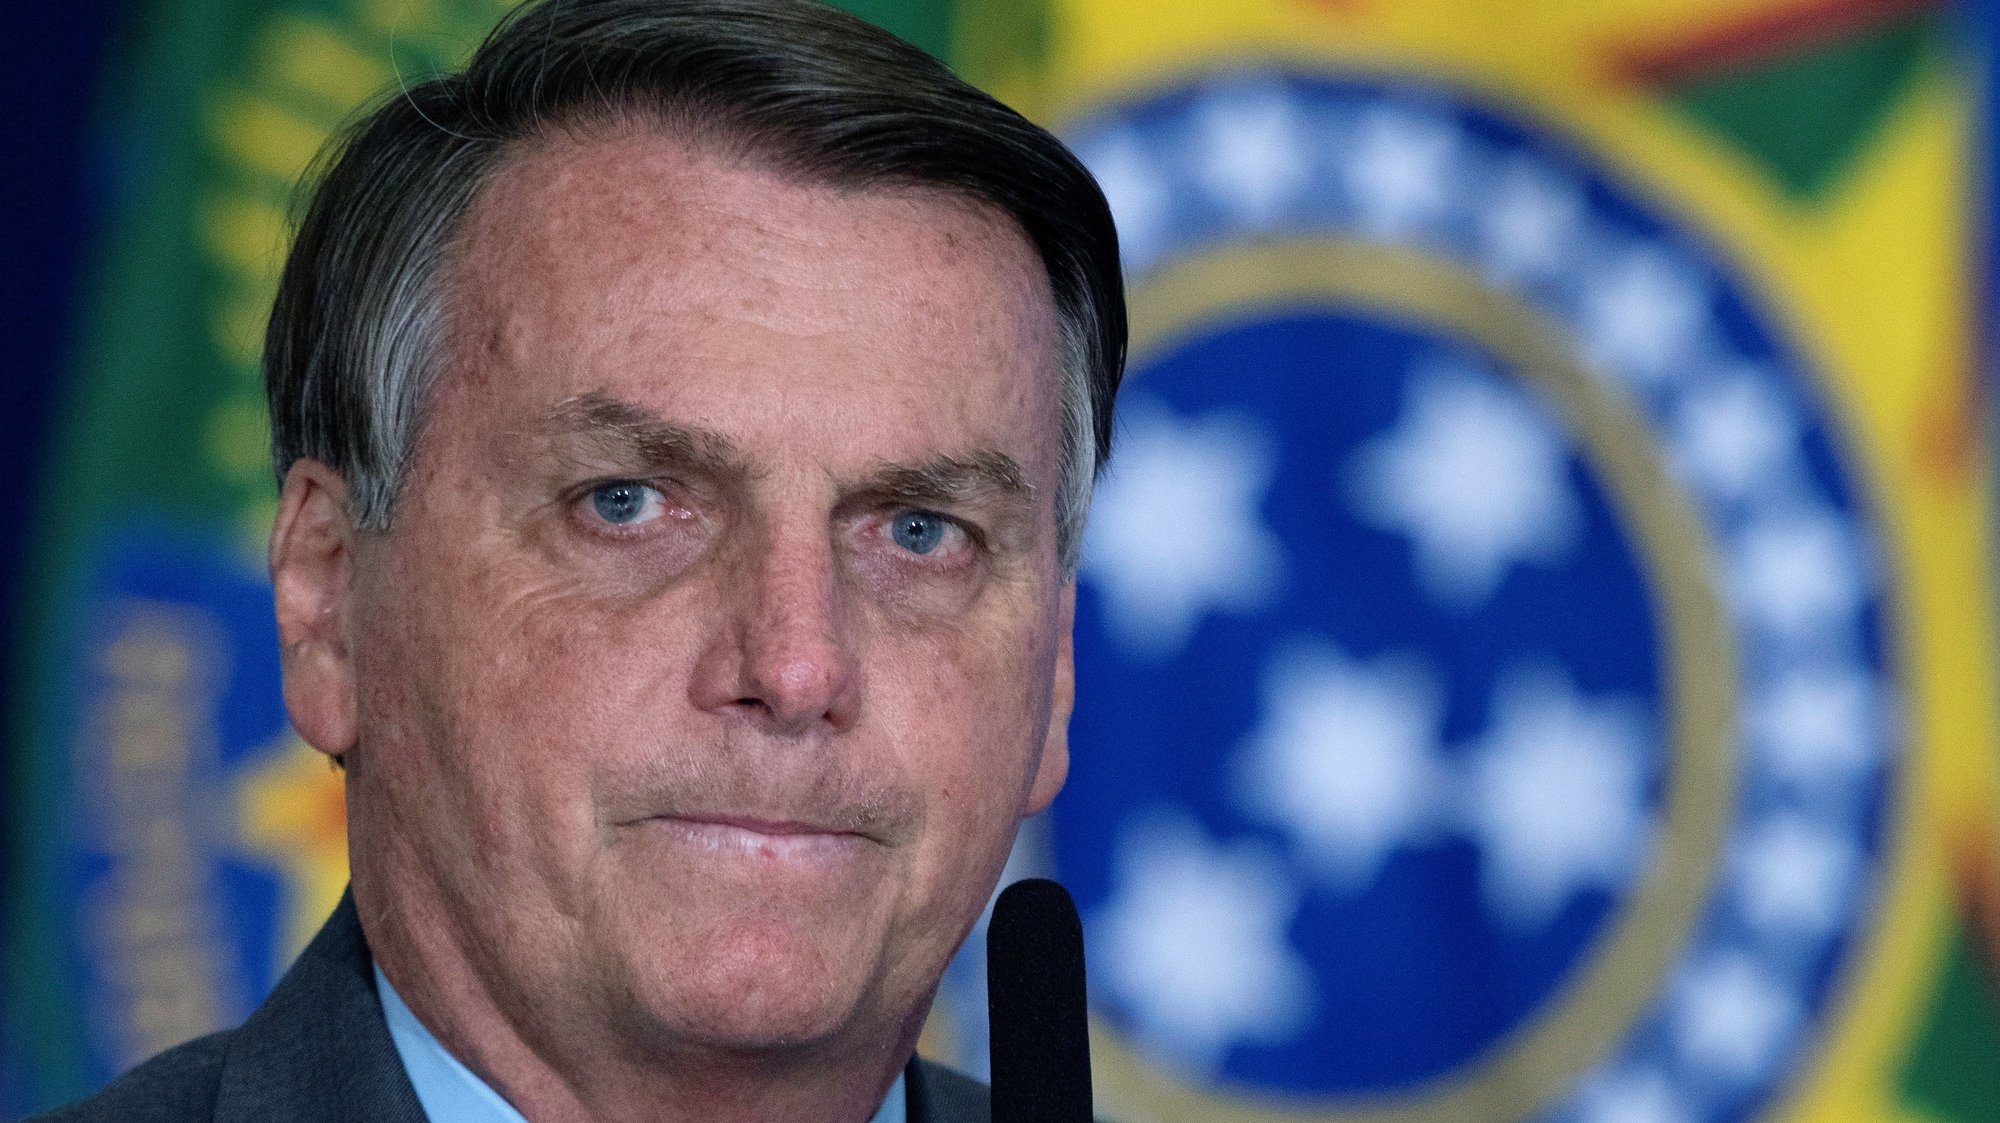 epa09340497 (FILE) - Brazilian President Jair Bolsonaro participates in the launching ceremony of the Los Gigantes de lo Alfalto program, in Brasilia, Brazil, 18 May 2021 (reissued 12 July 2021). Brazilian Federal Police on 12 July 2021 opened an investigation against Brazilian President Bolsonaro for breach of duty over the purchase of Covaxin.  EPA/Joedson Alves *** Local Caption *** 56905212